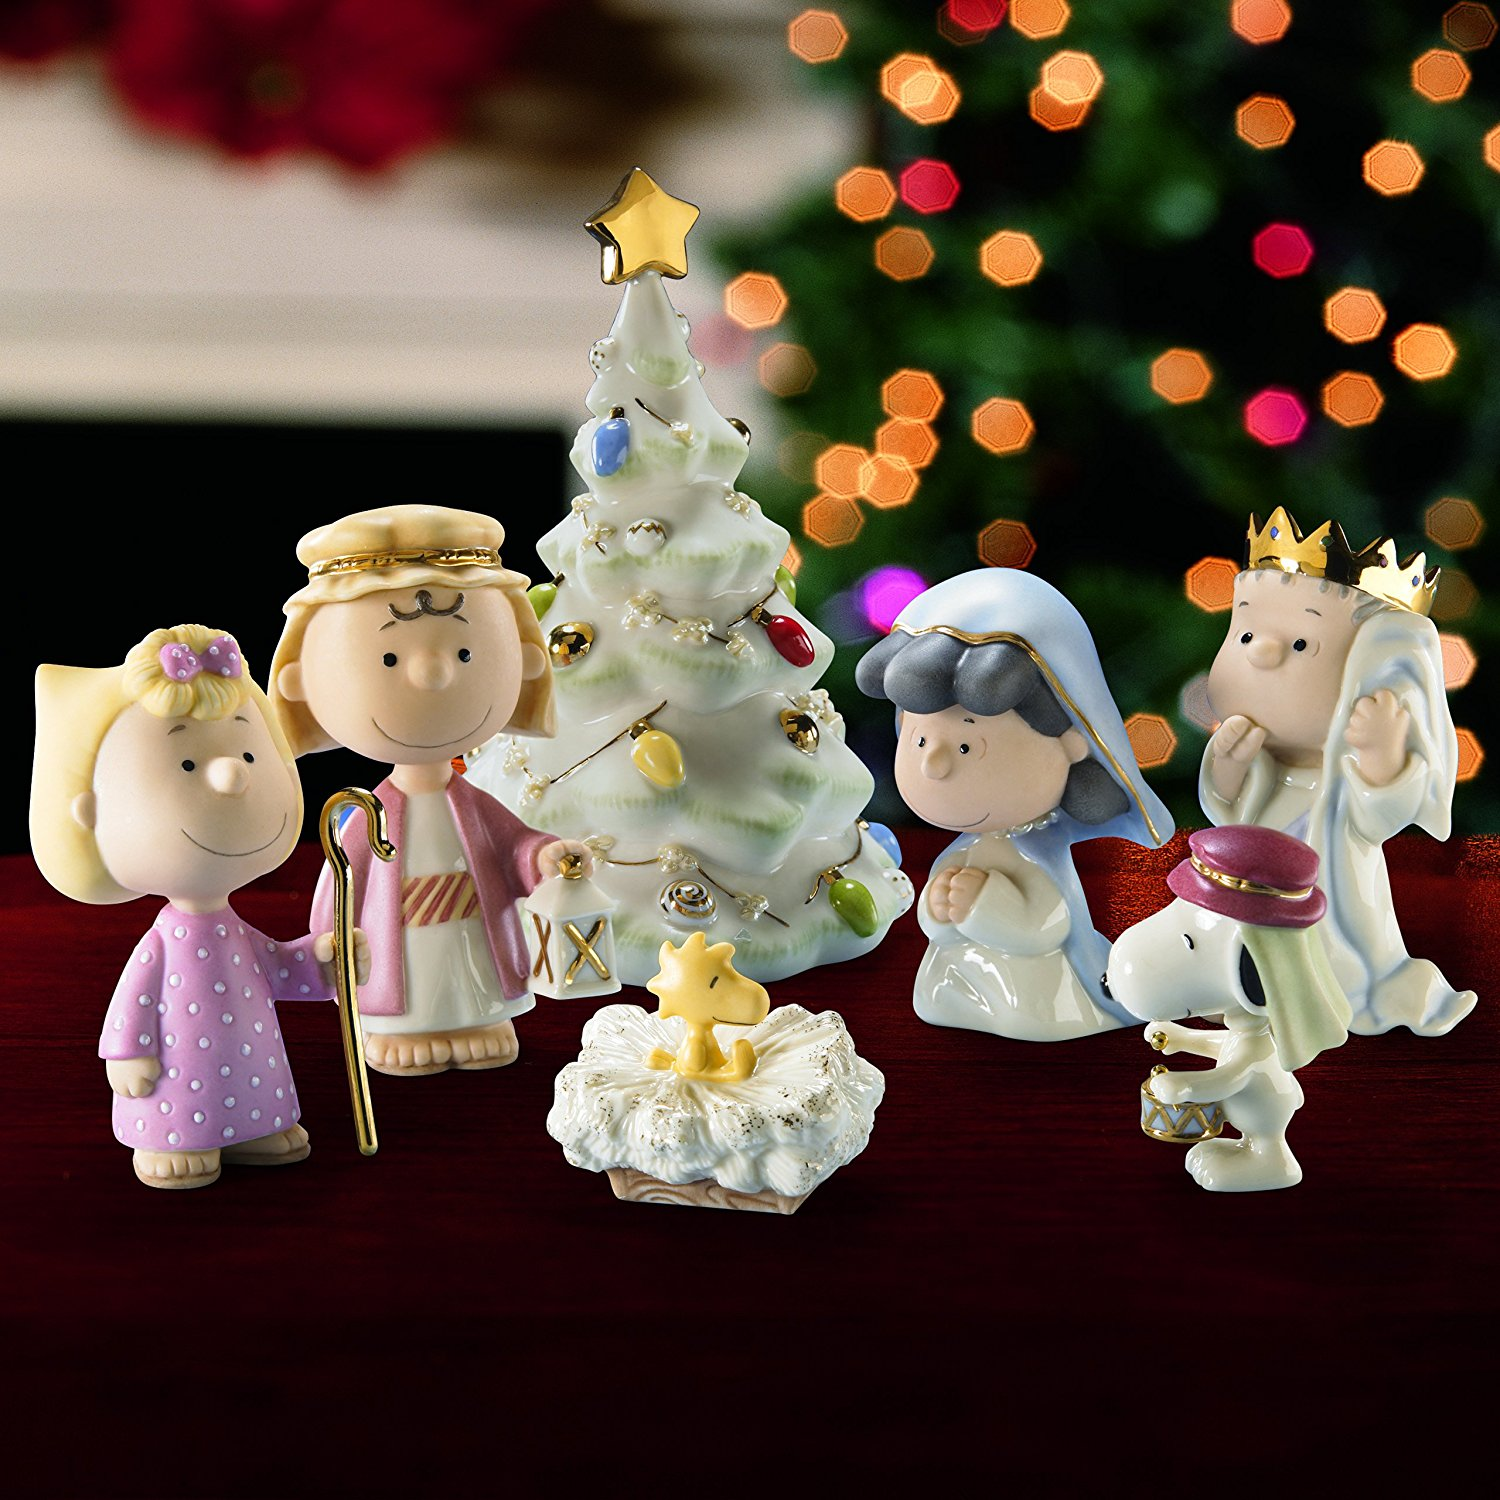 Lenox Peanuts The Christmas Pageant Nativity Scene Christmas Figurine Set of 7